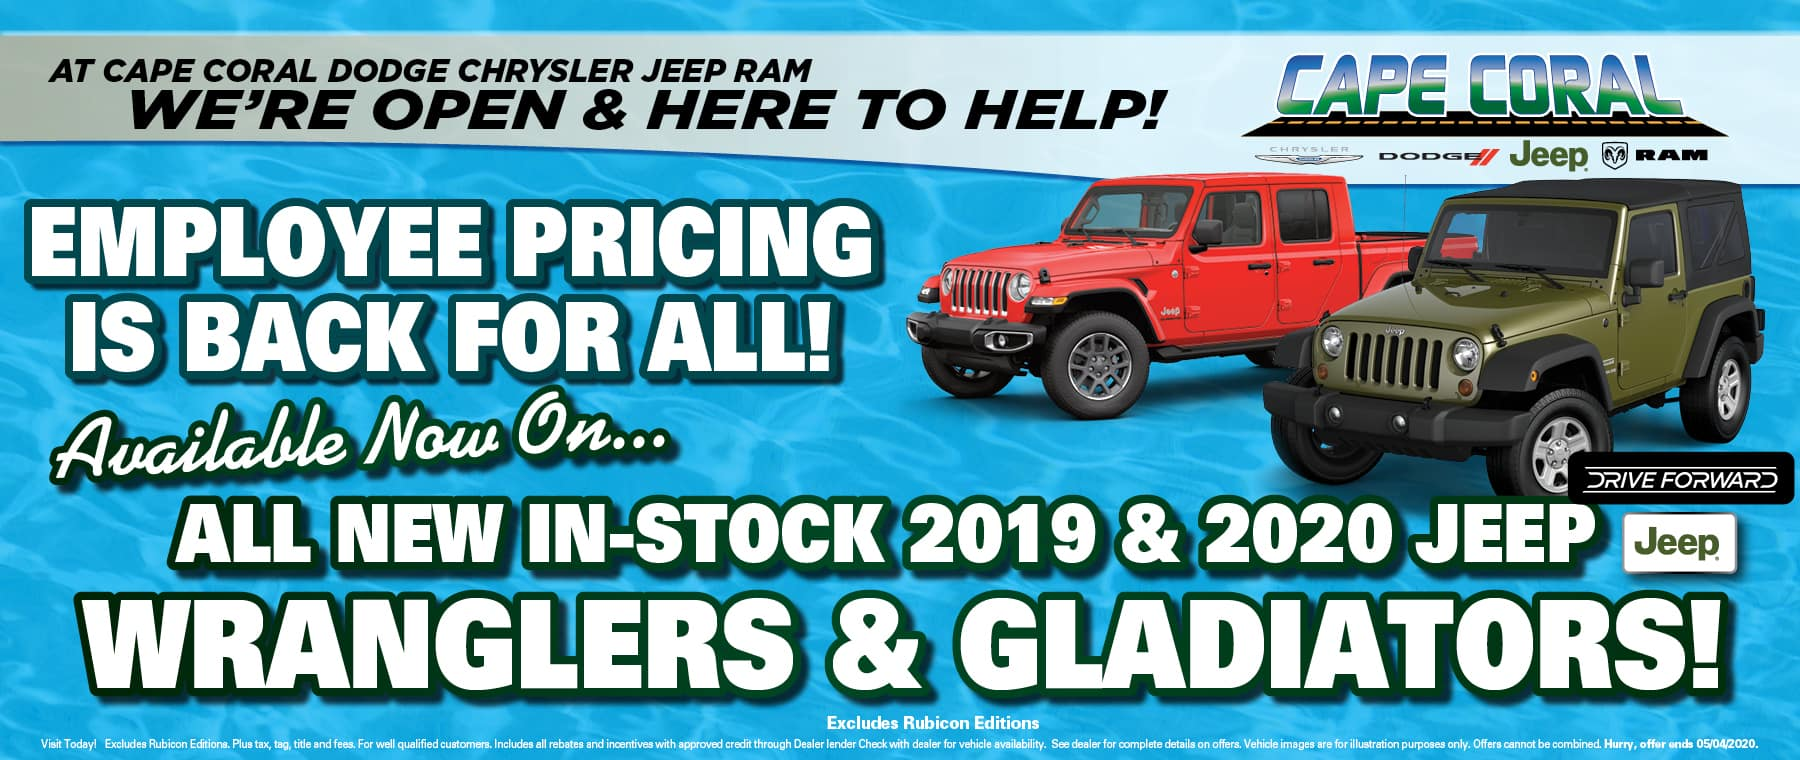 Jeep Employee Pricing For All!